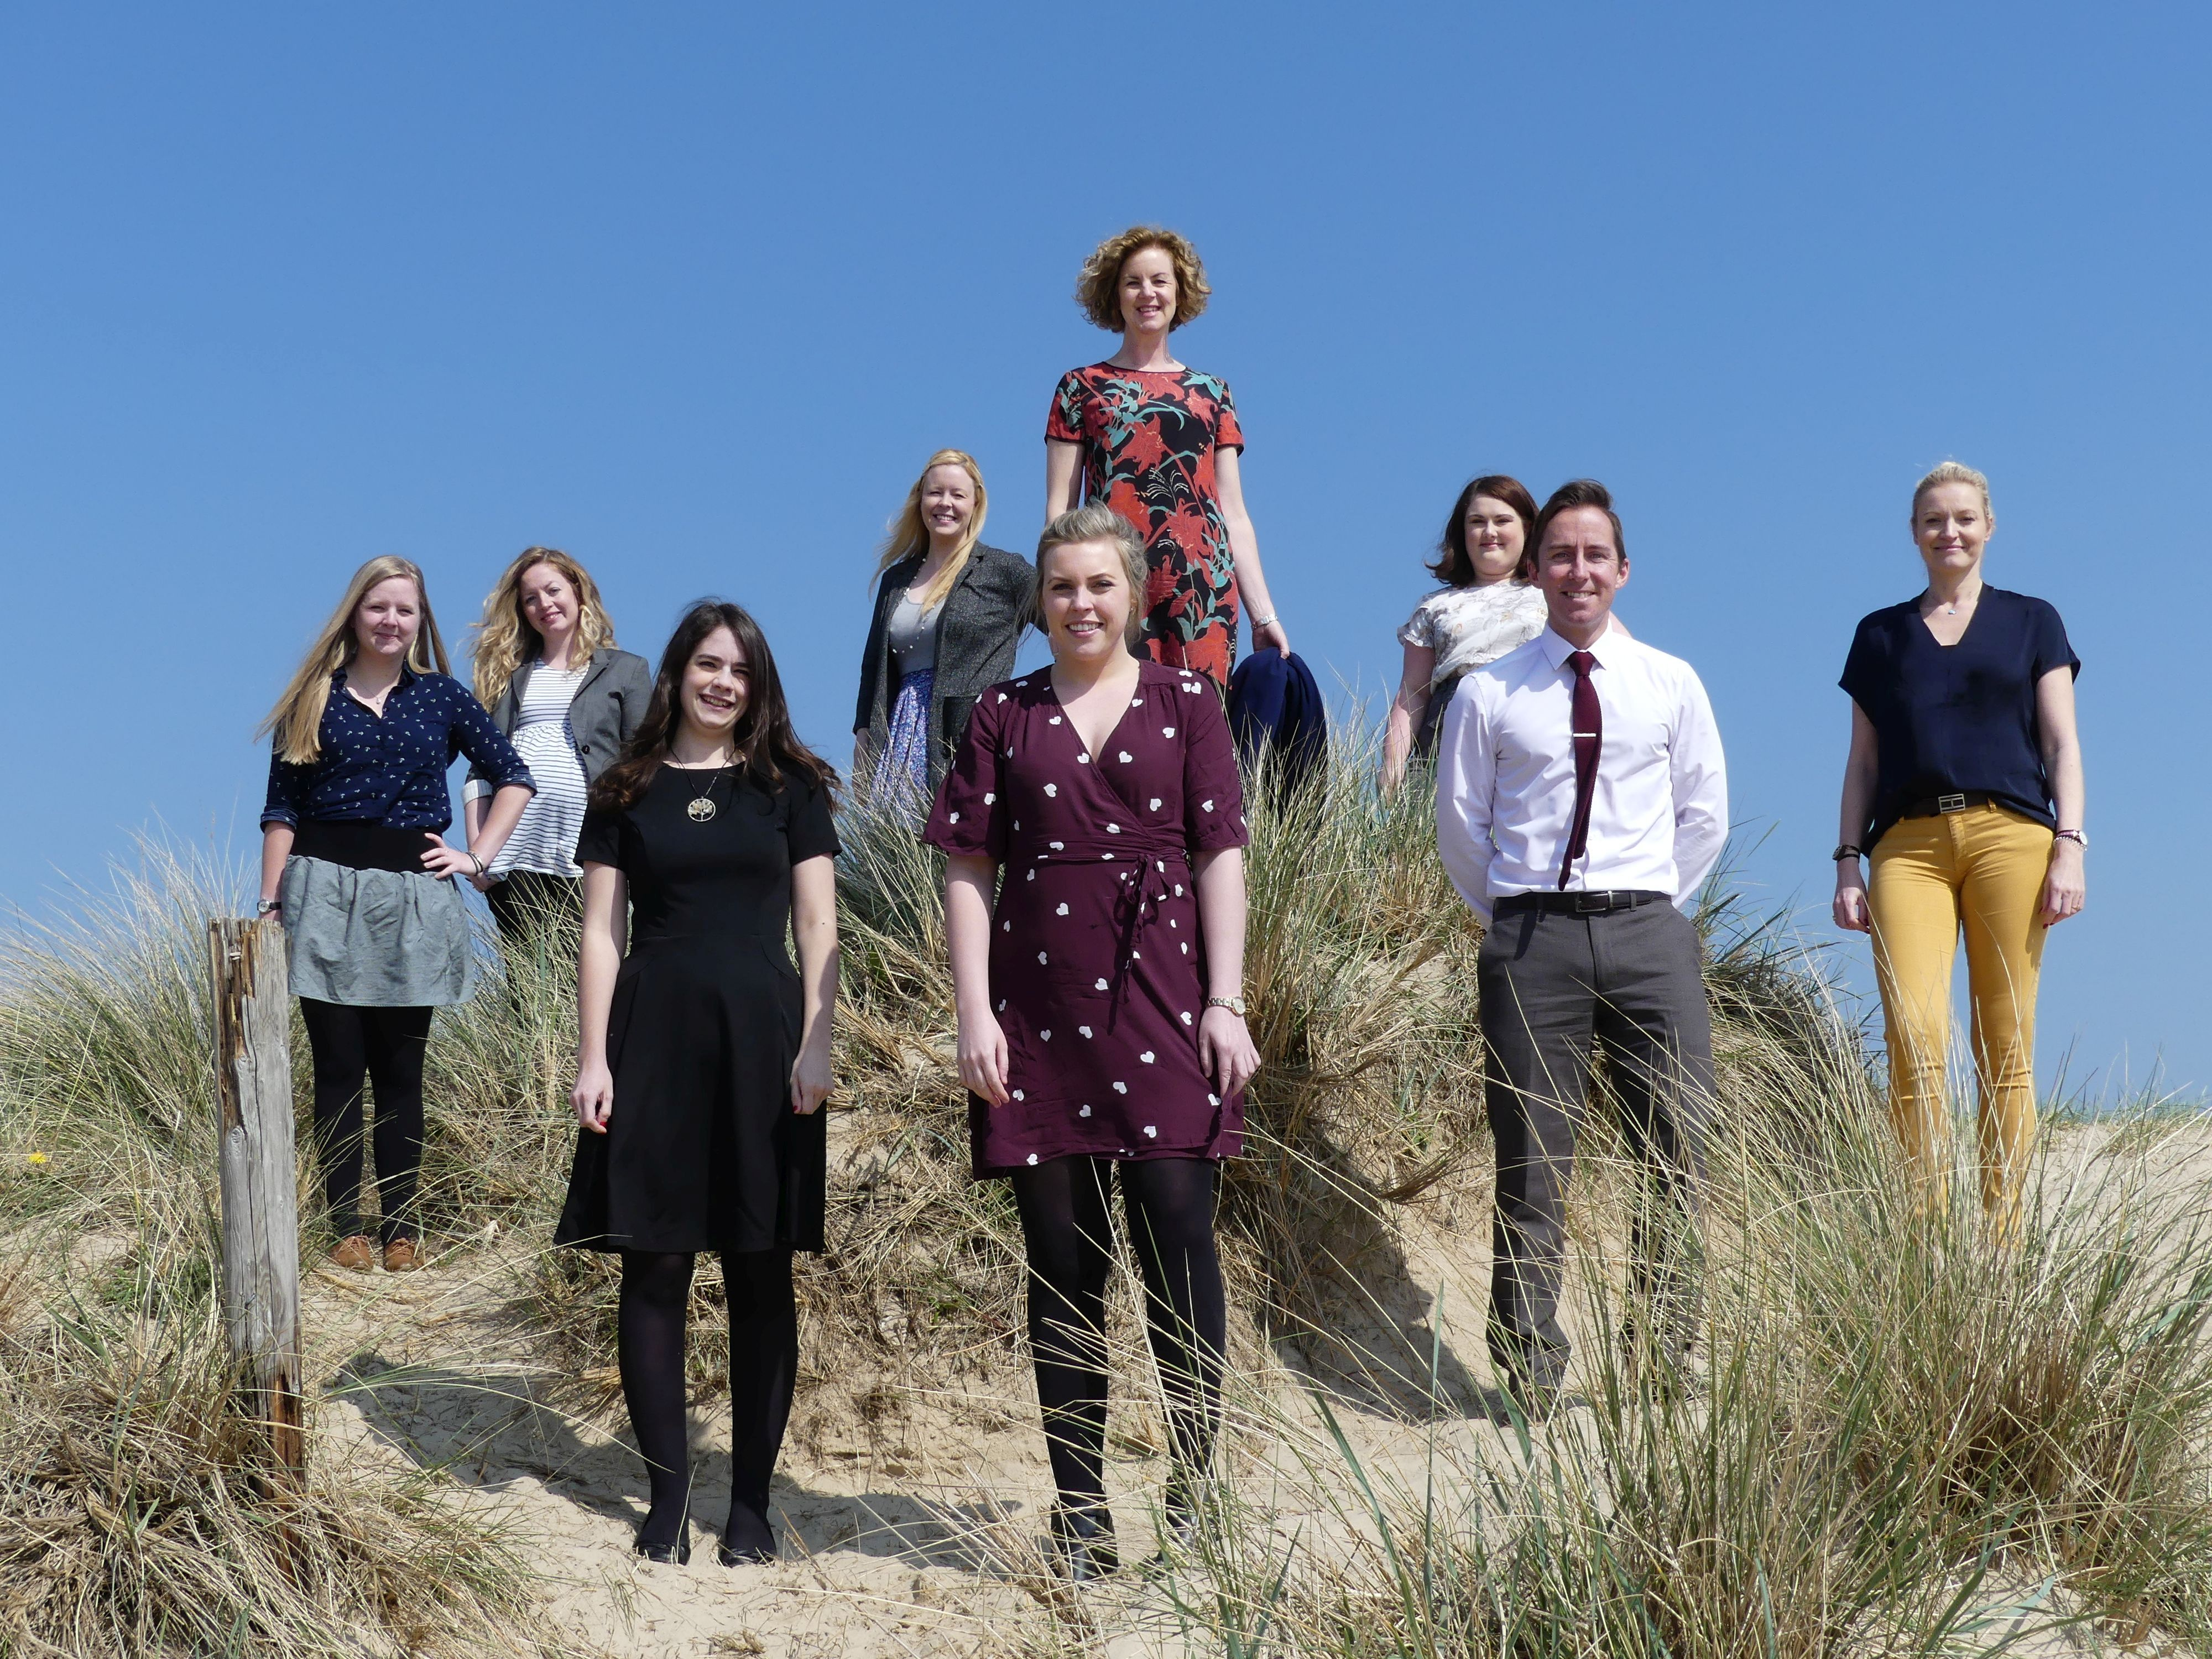 Dorset PR and marketing agency, Liz Lean PR, which is based in Sandbanks, is celebrating a number of client wins.